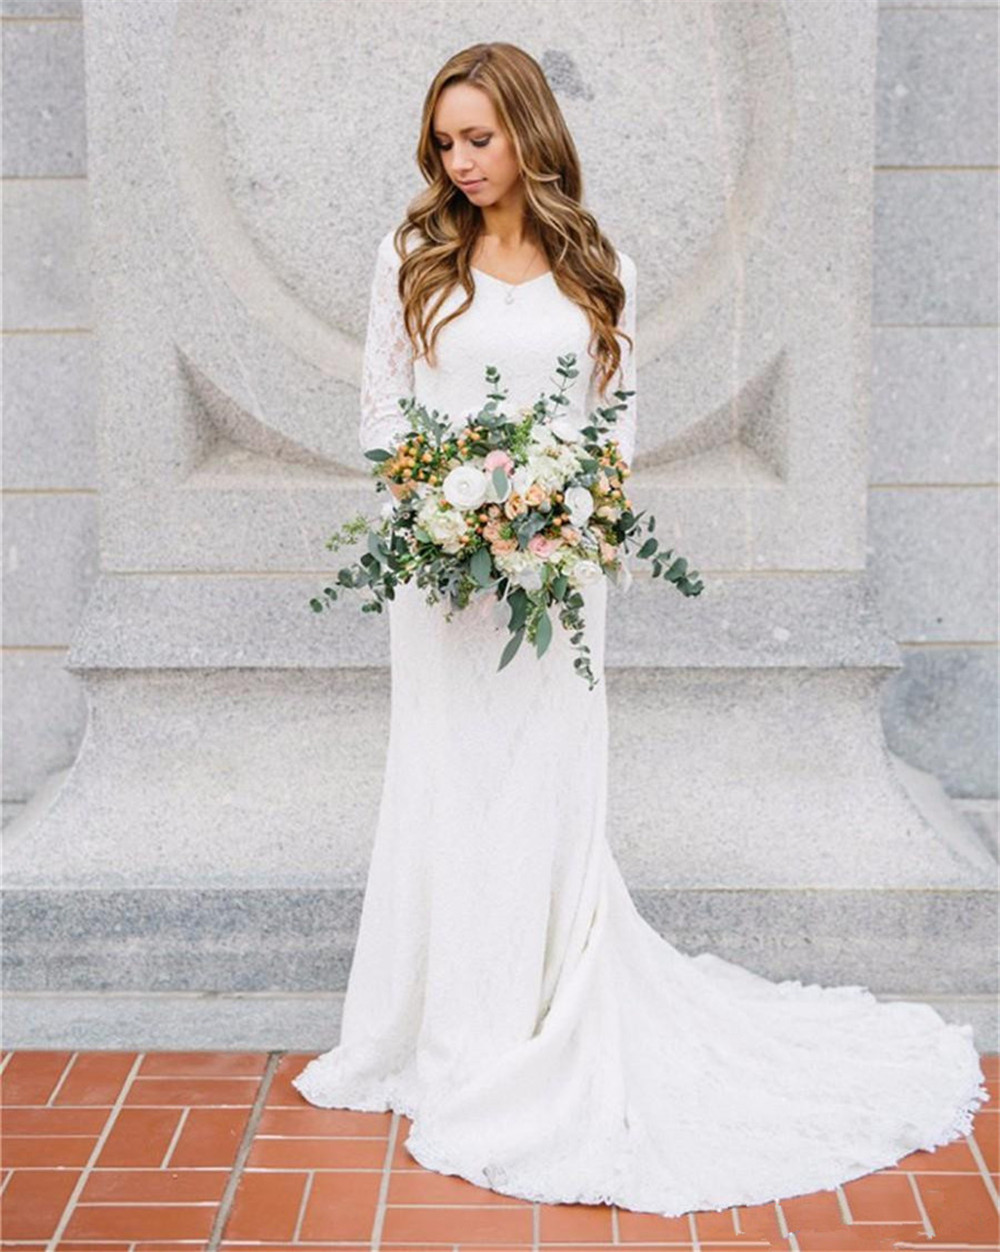 2018 New Long Sleeves Sexy Wedding Dresses Beach Bridal Lace Appliques White/Lvory Romantic  Floor-Length Accept Custom Made